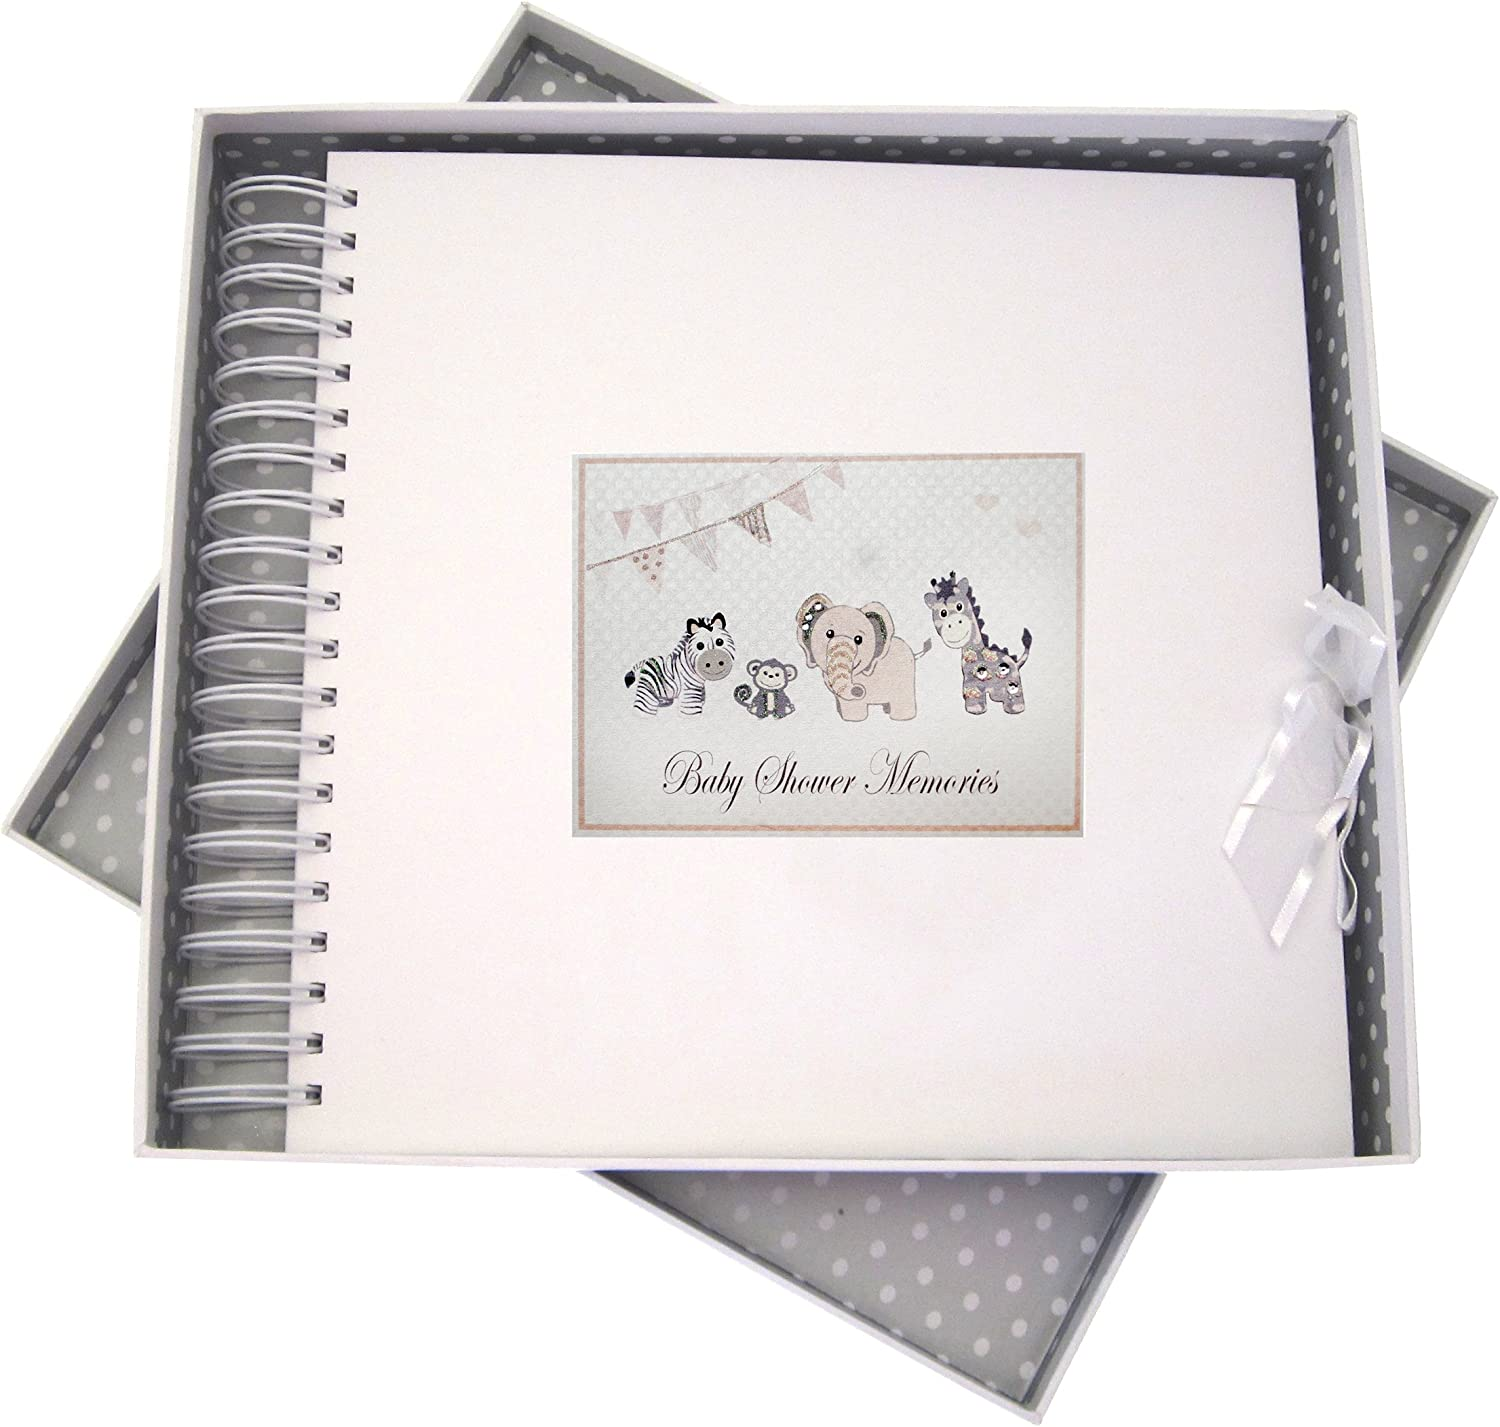 Board Card and Memory Book Silver Toys 27 x 30 x 4 cm Animals WHITE COTTON CARDS Baby Shower